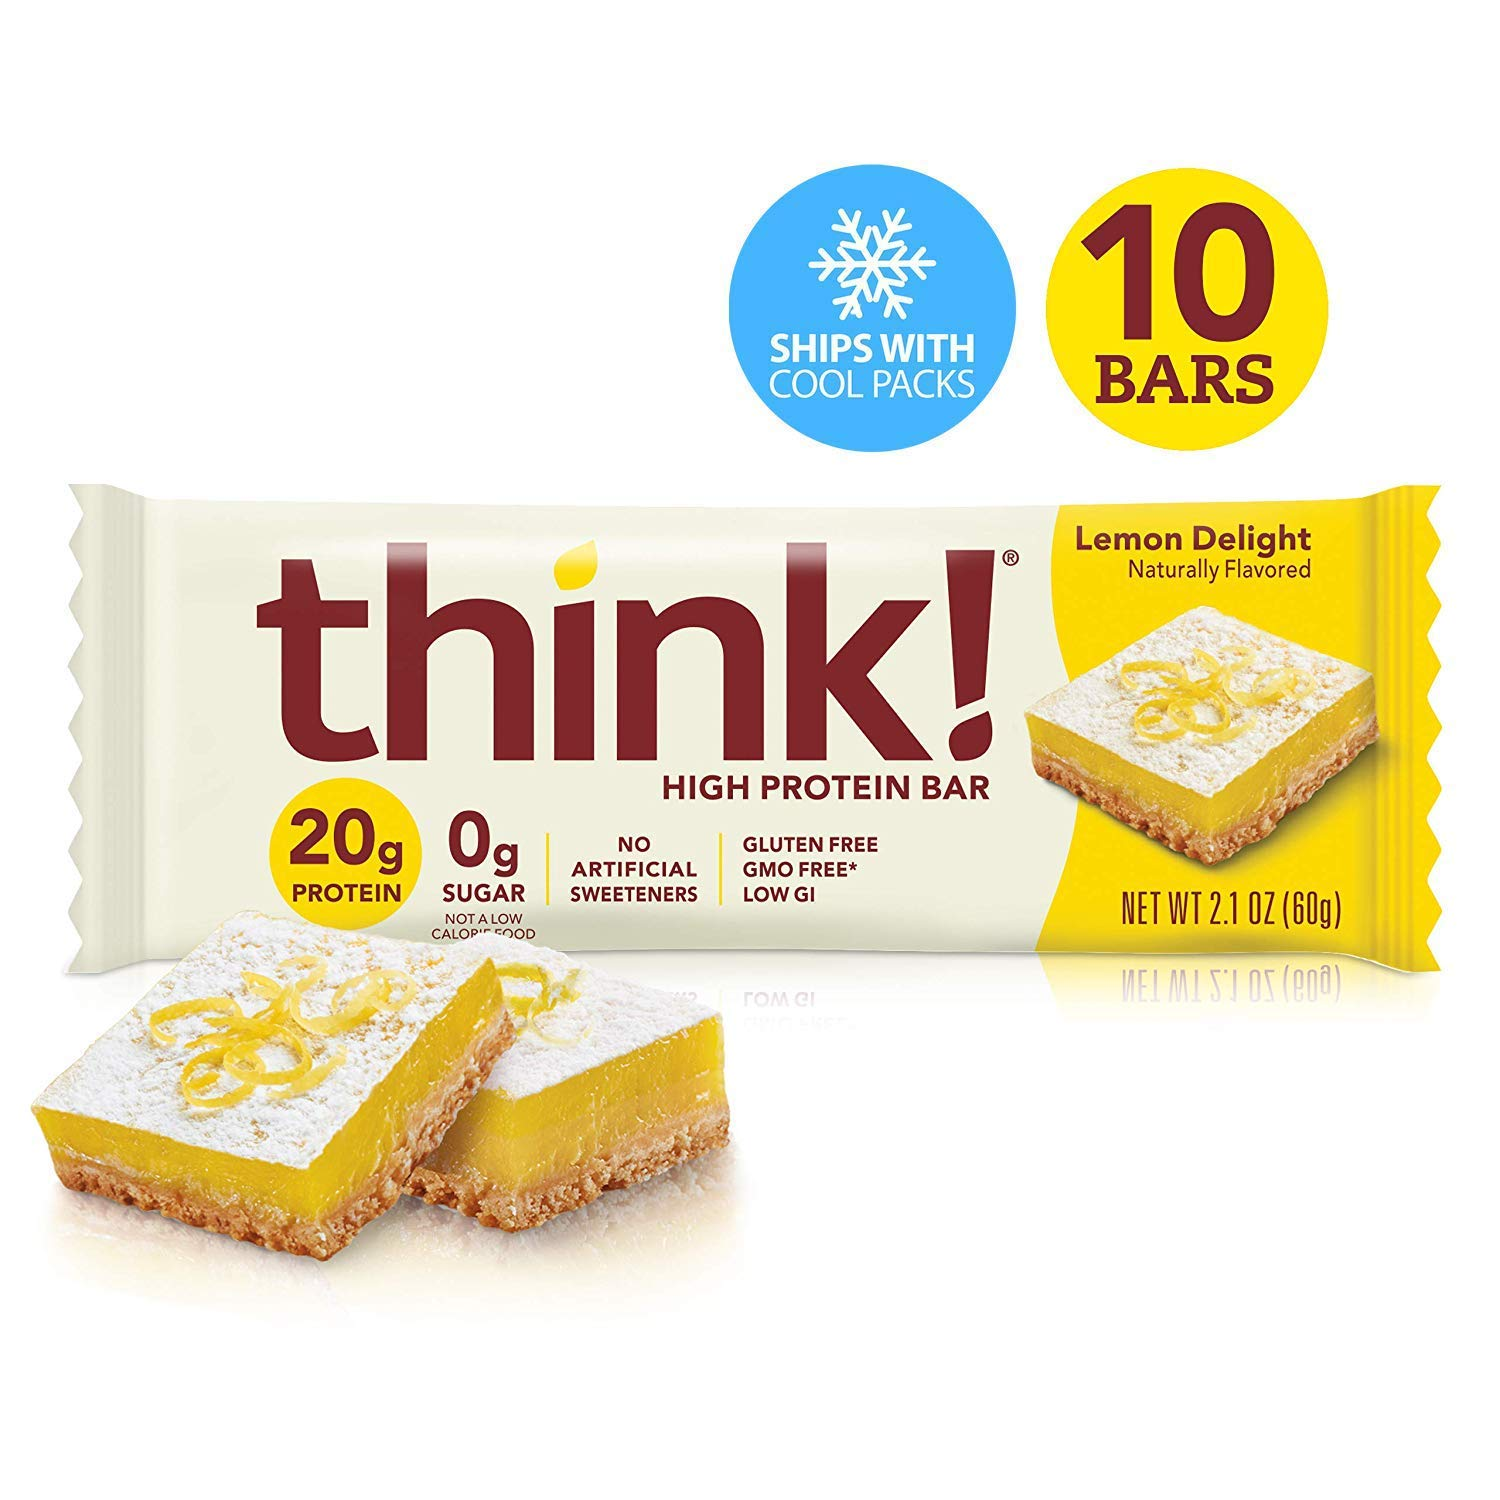 think! (thinkThin) High Protein Bars - Lemon Delight, 20g Protein, 0g Sugar, No Artificial Sweeteners, Gluten Free, GMO Free*, 2.1 oz bar (10Count - Packaging May Vary) by thinkThin